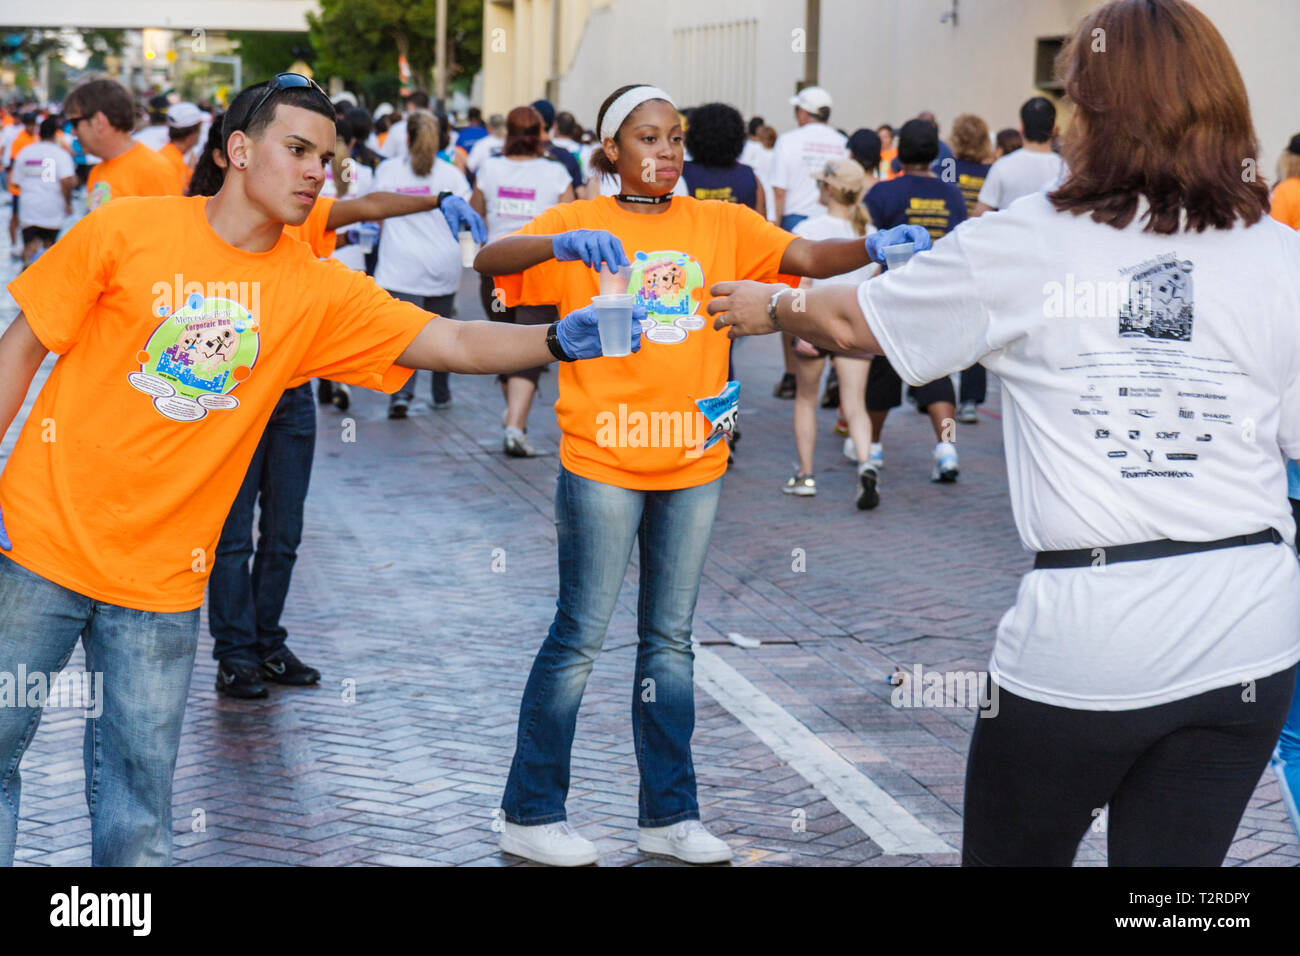 Miami Florida Bayfront Park Mercedes-Benz Miami Corporate Run community charity event runners walkers coworkers co-workers water - Stock Image